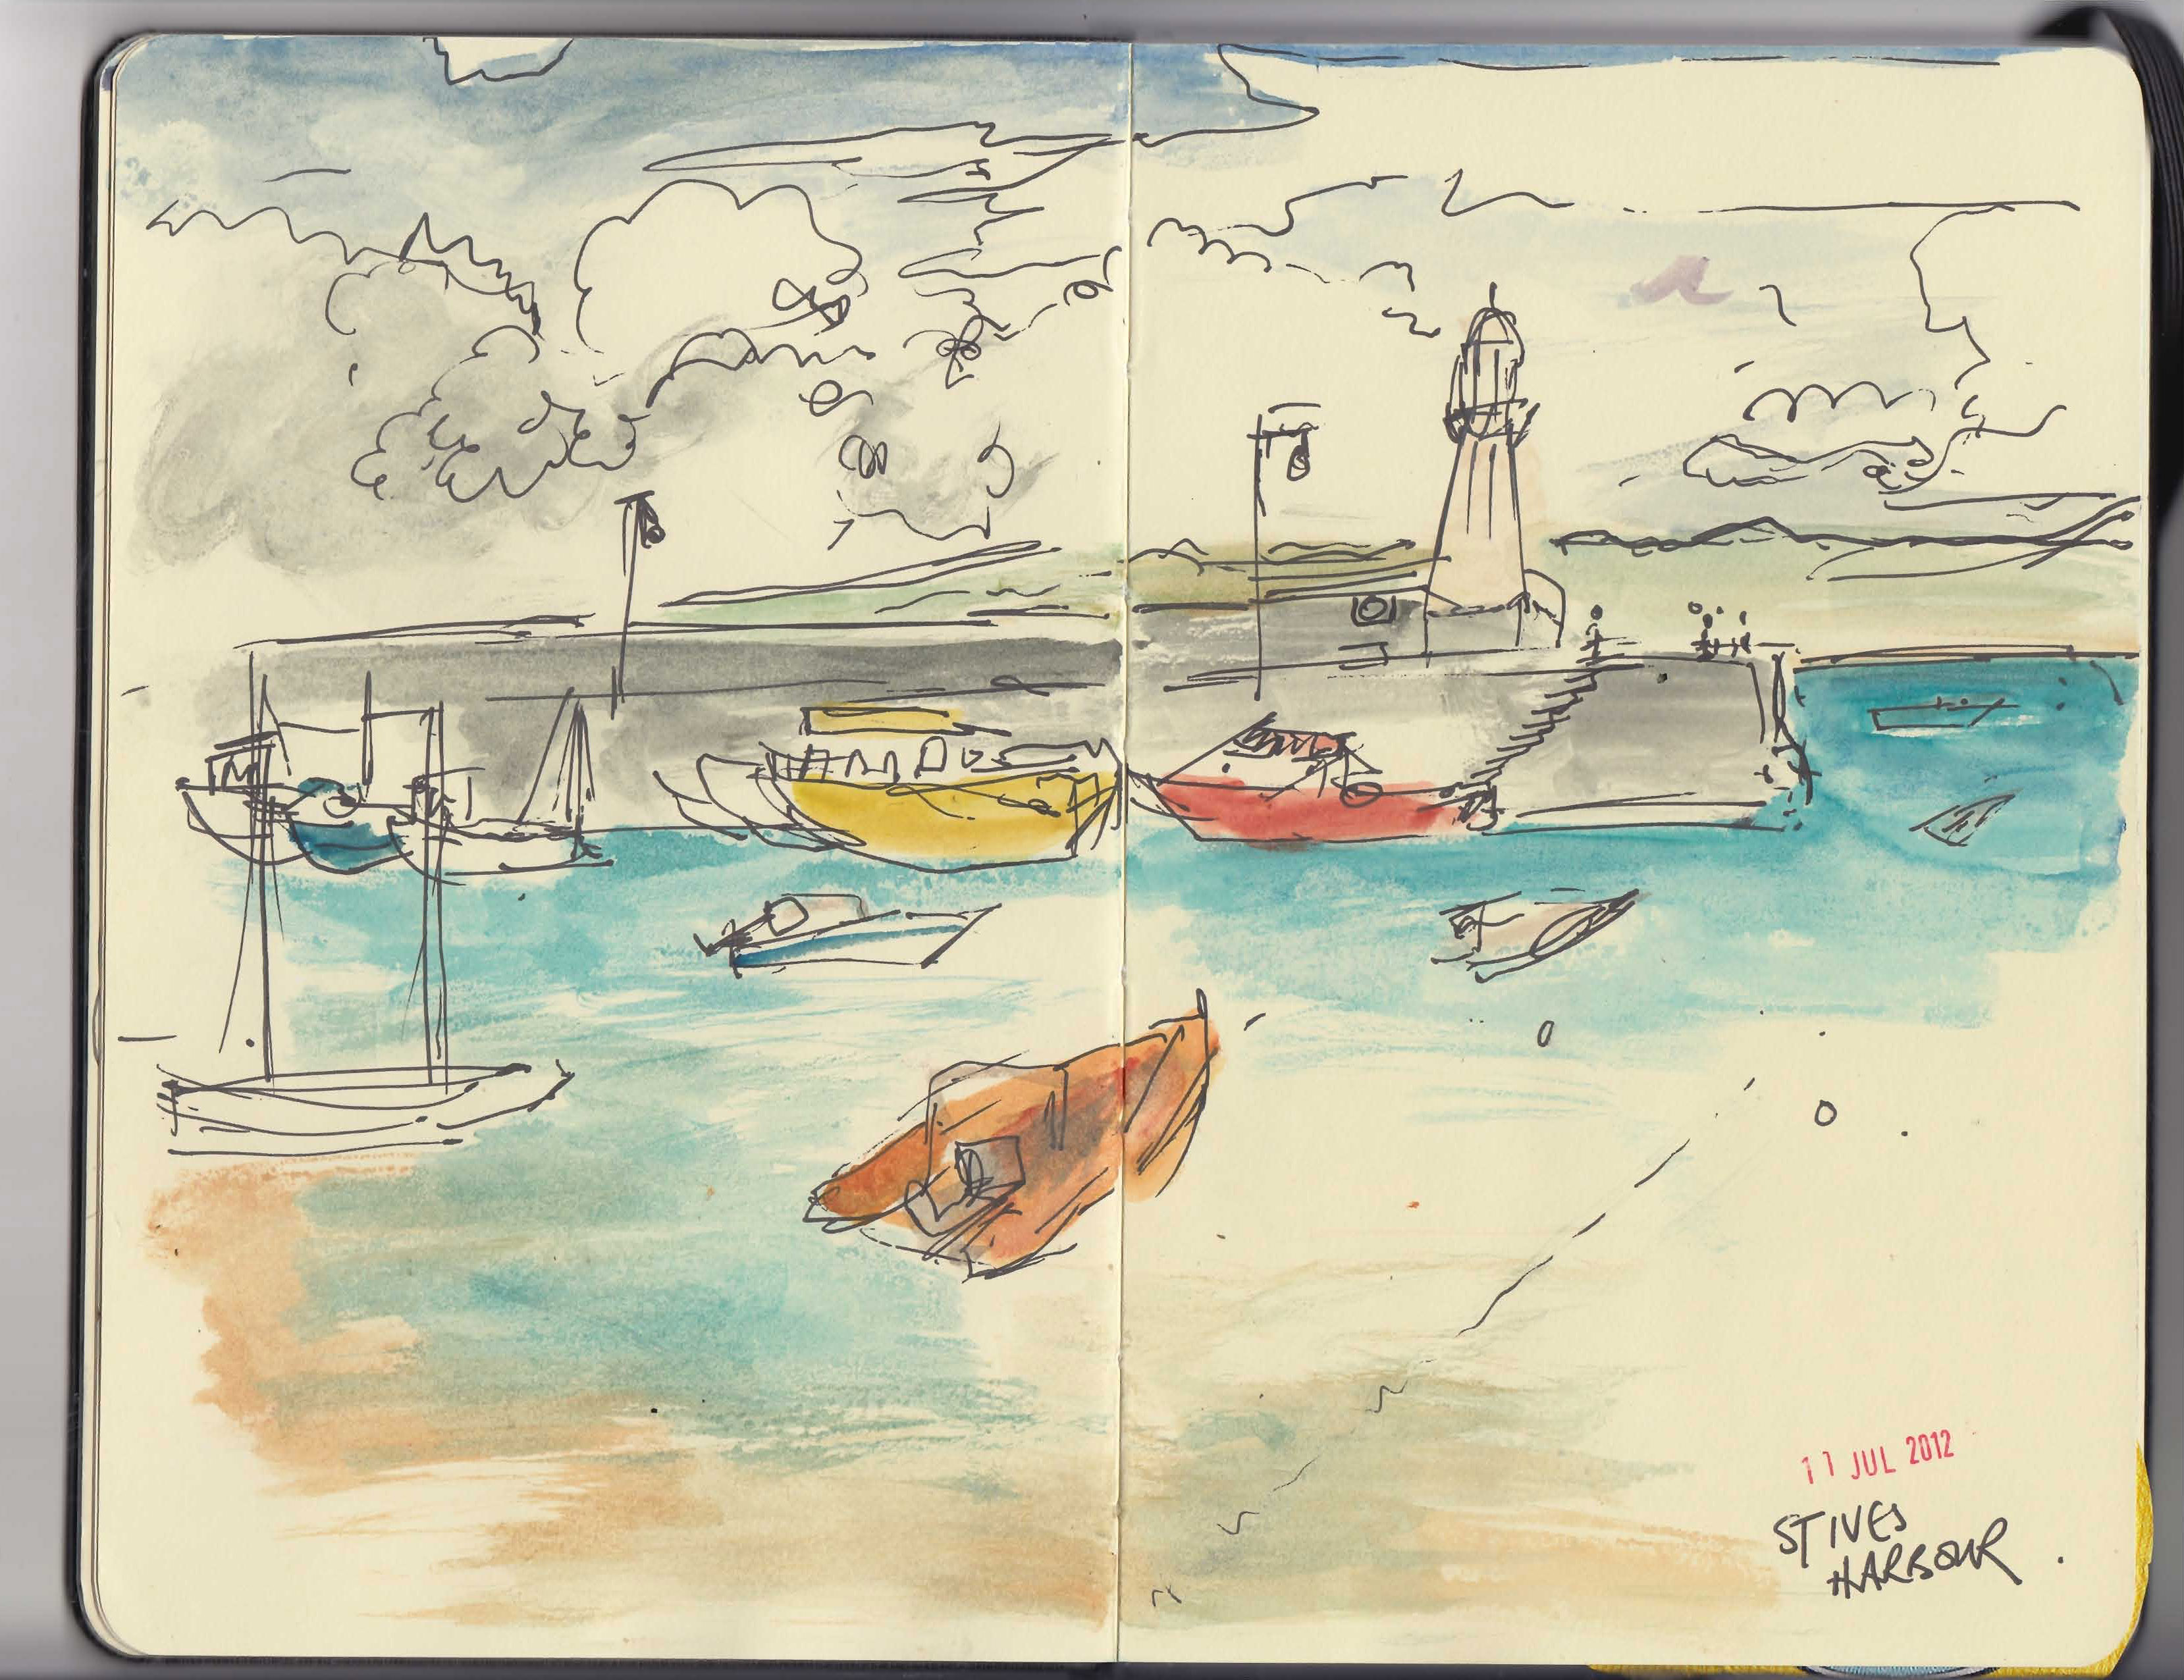 St Ives harbour again